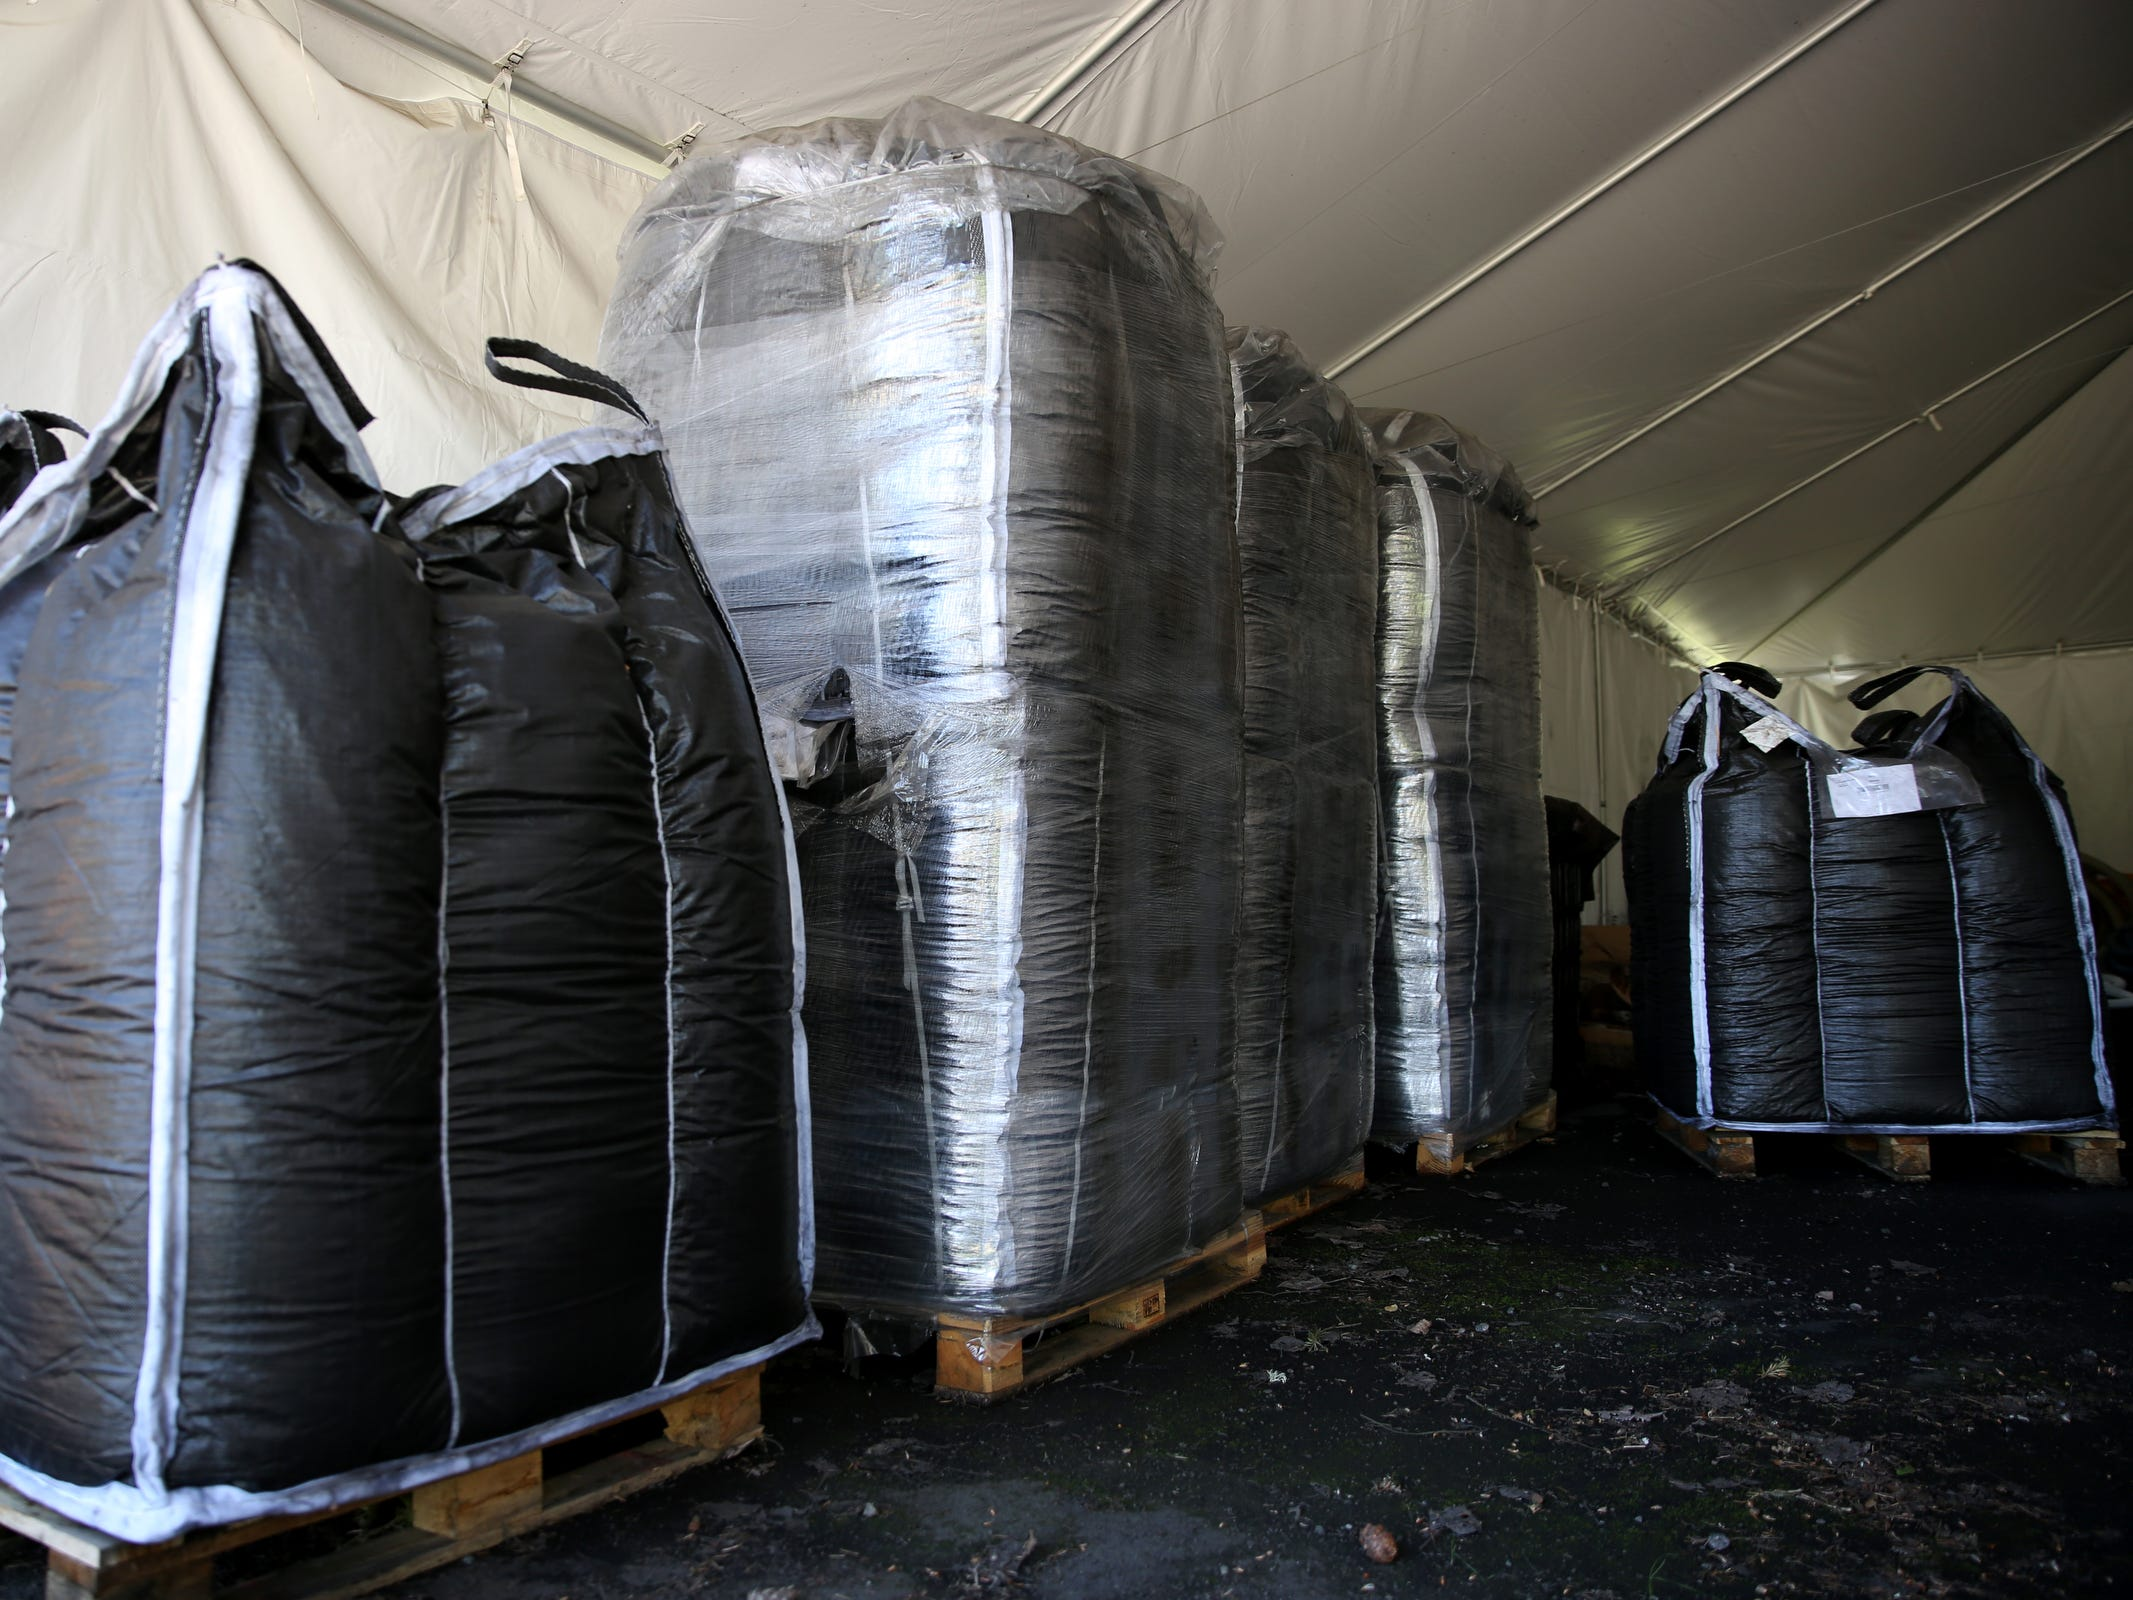 Powder-activated carbon is stored at the Geren Island Water Treatment Facility near Stayton on May 10, 2019. Salem officials are planning to spend more than $75 million to build defenses against toxic algae, in an effort to avoid a rerun of last year's drinking water crisis.